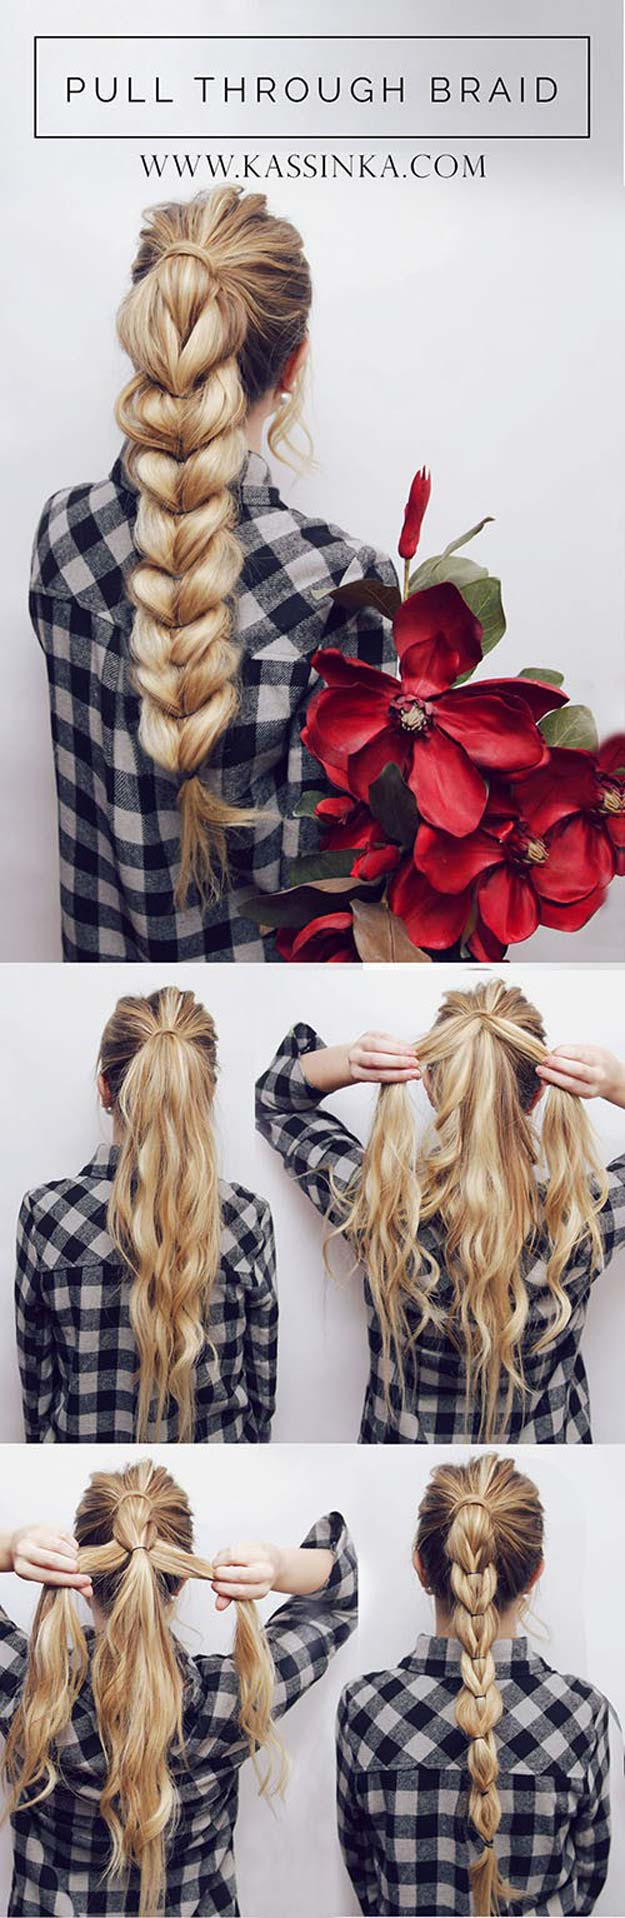 Astonishing 40 Of The Best Cute Hair Braiding Tutorials Diy Projects For Teens Short Hairstyles Gunalazisus